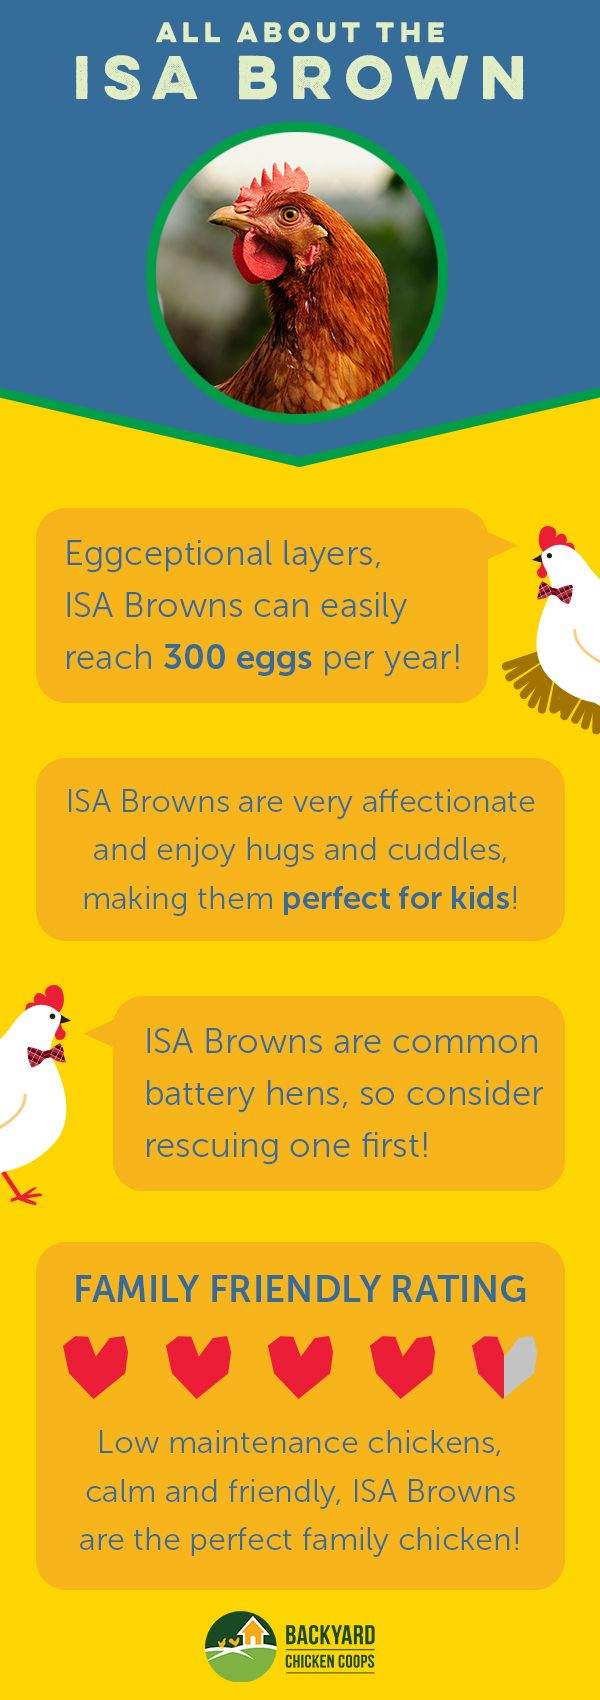 Isa Brown chickens are a common breed and for good reason too! They are prolific egg layers, family friendly and an all round great chicken. You can check out their breed profile for more information here, http://www.backyardchickencoops.com.au/isa-brown/  #loveyourchickens  #breedprofile #isabrowns